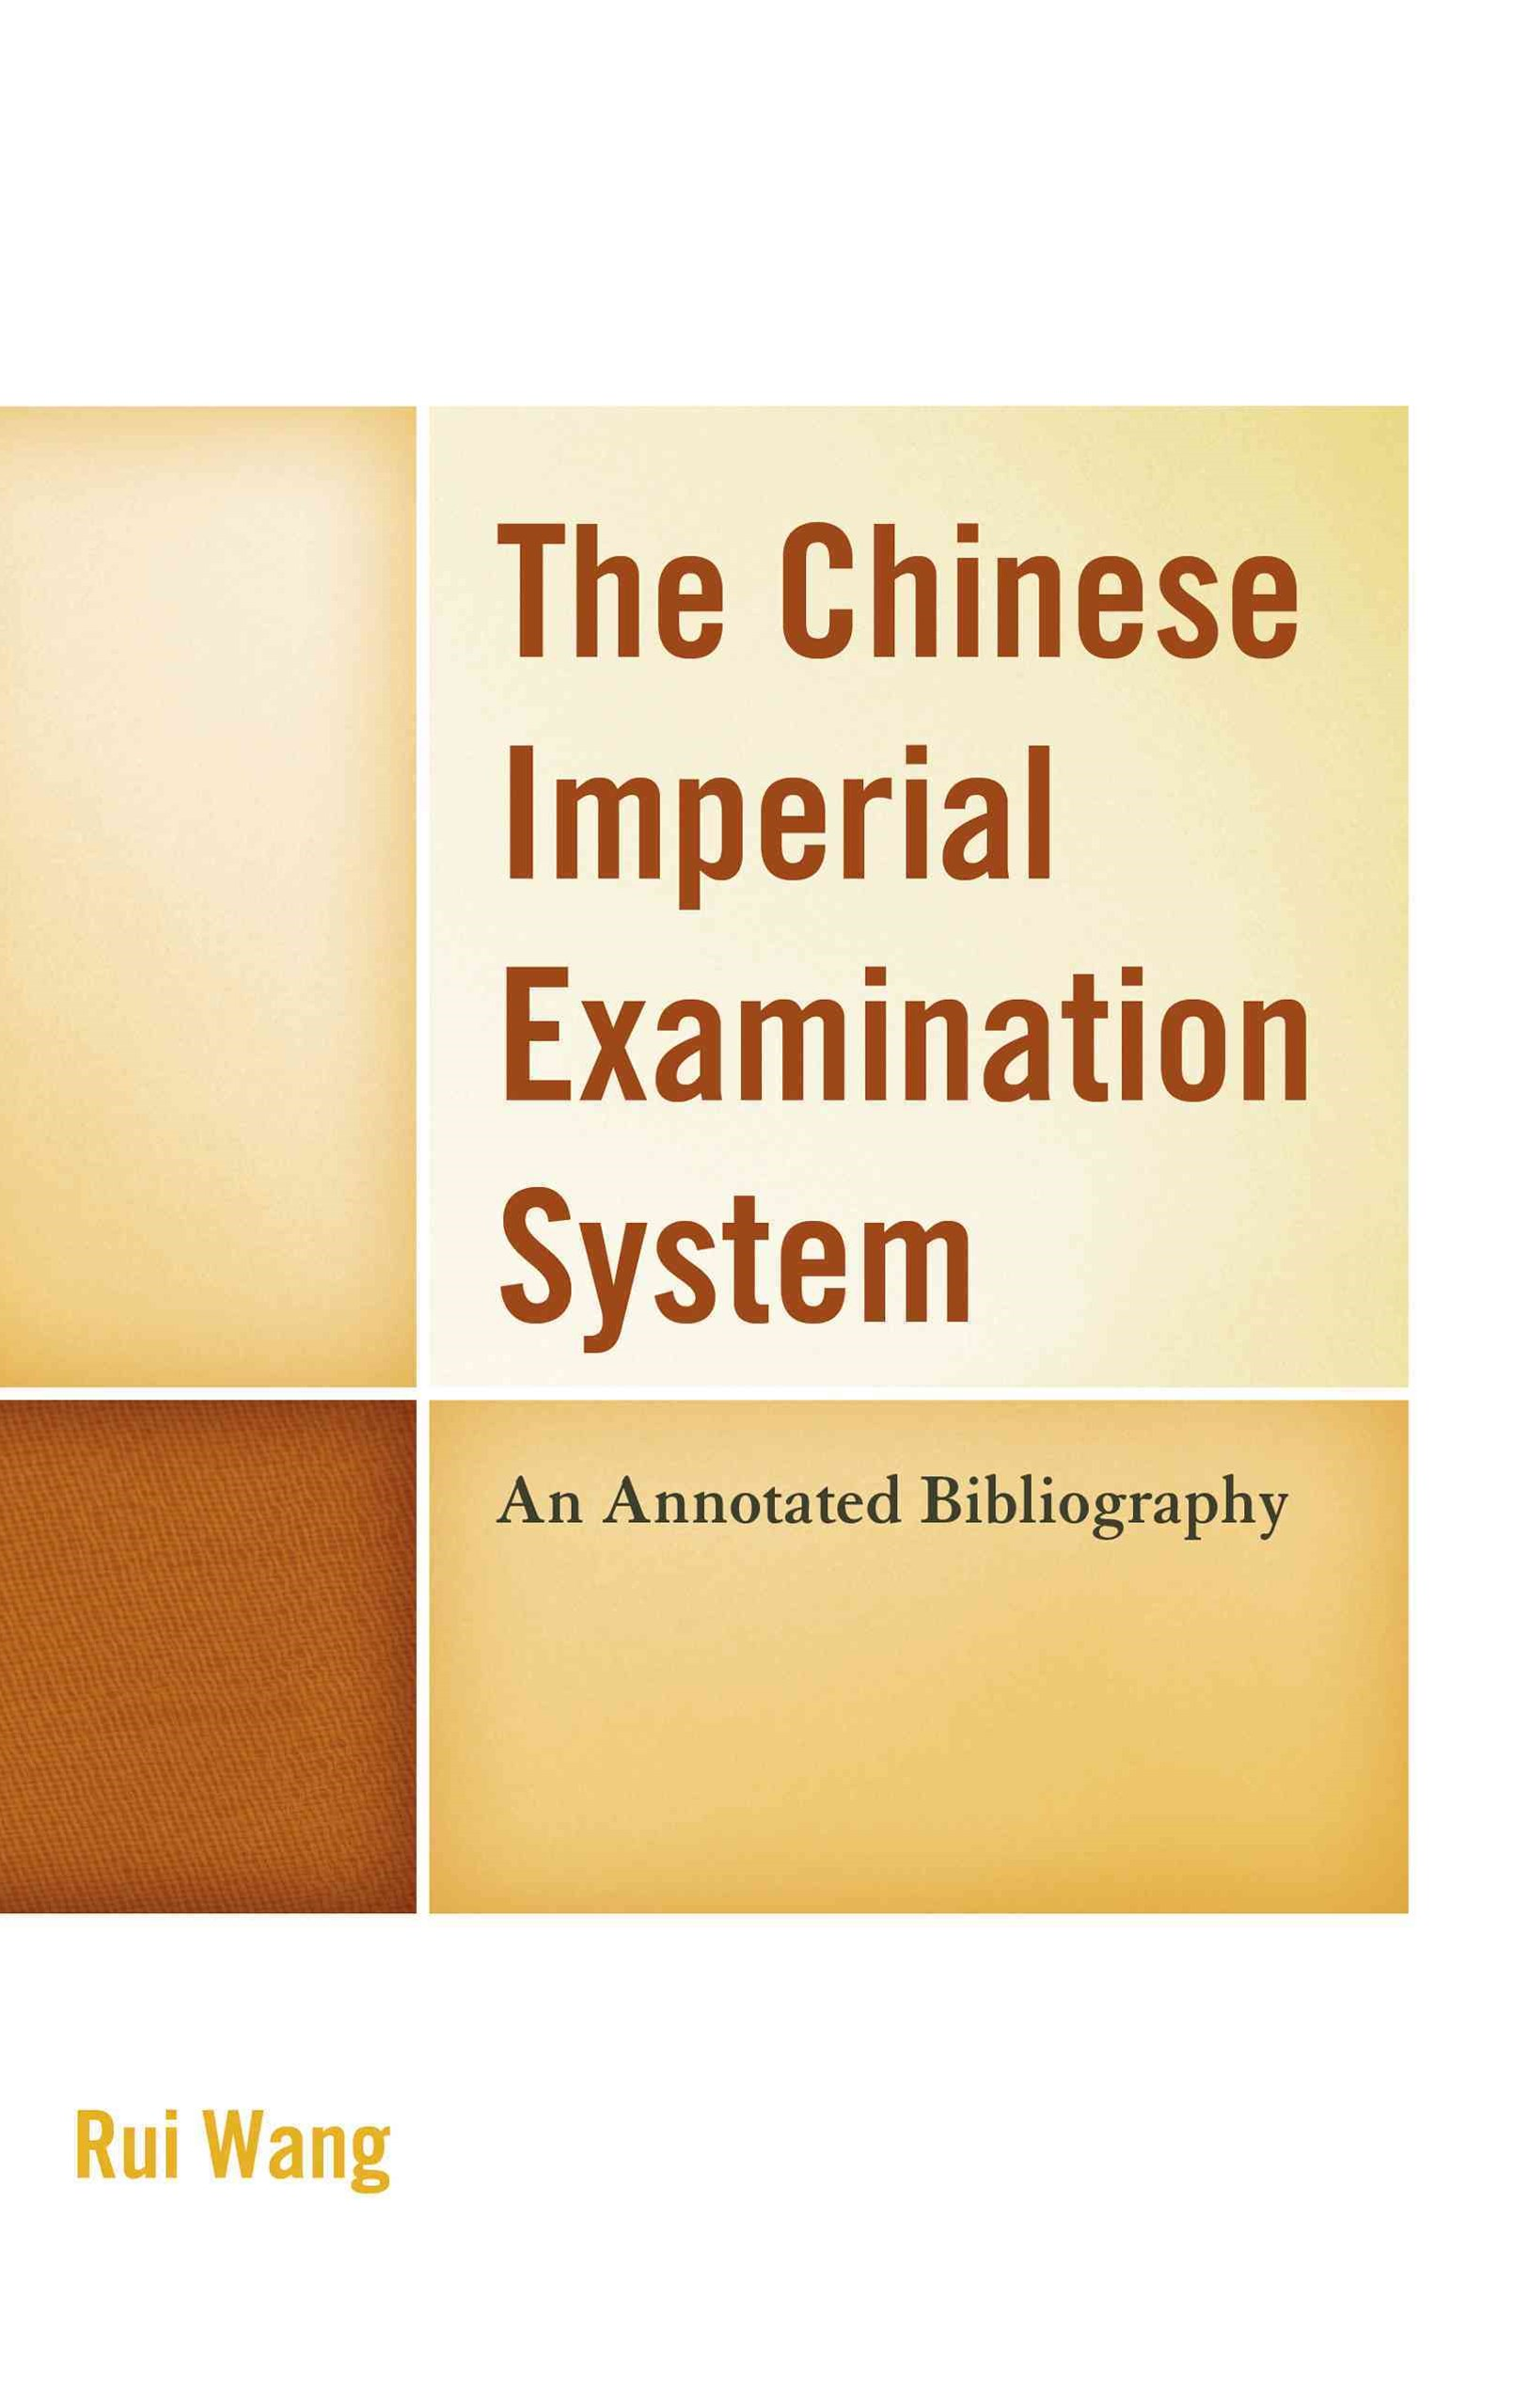 The Chinese Imperial Examination System